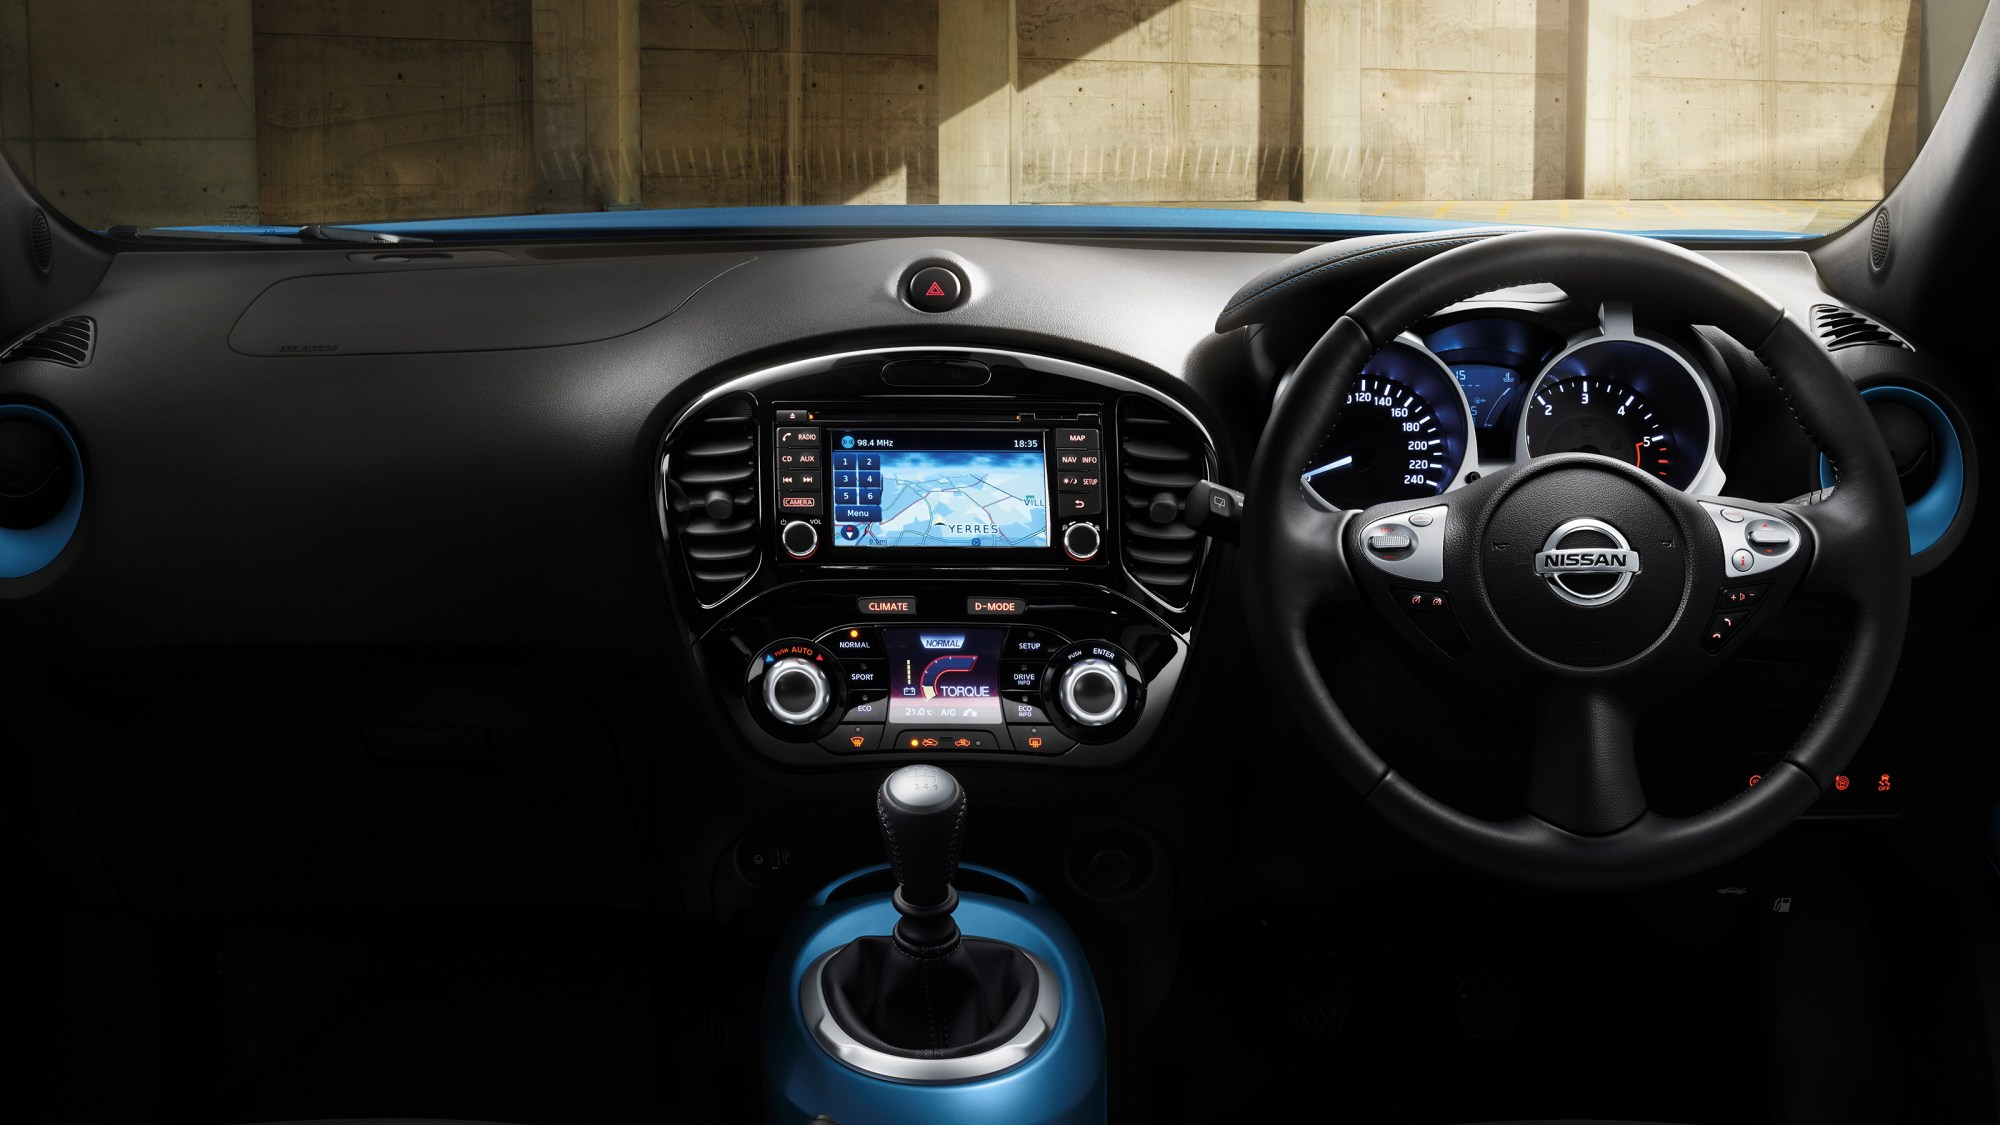 hight resolution of new nissan juke interior view of the dashboard